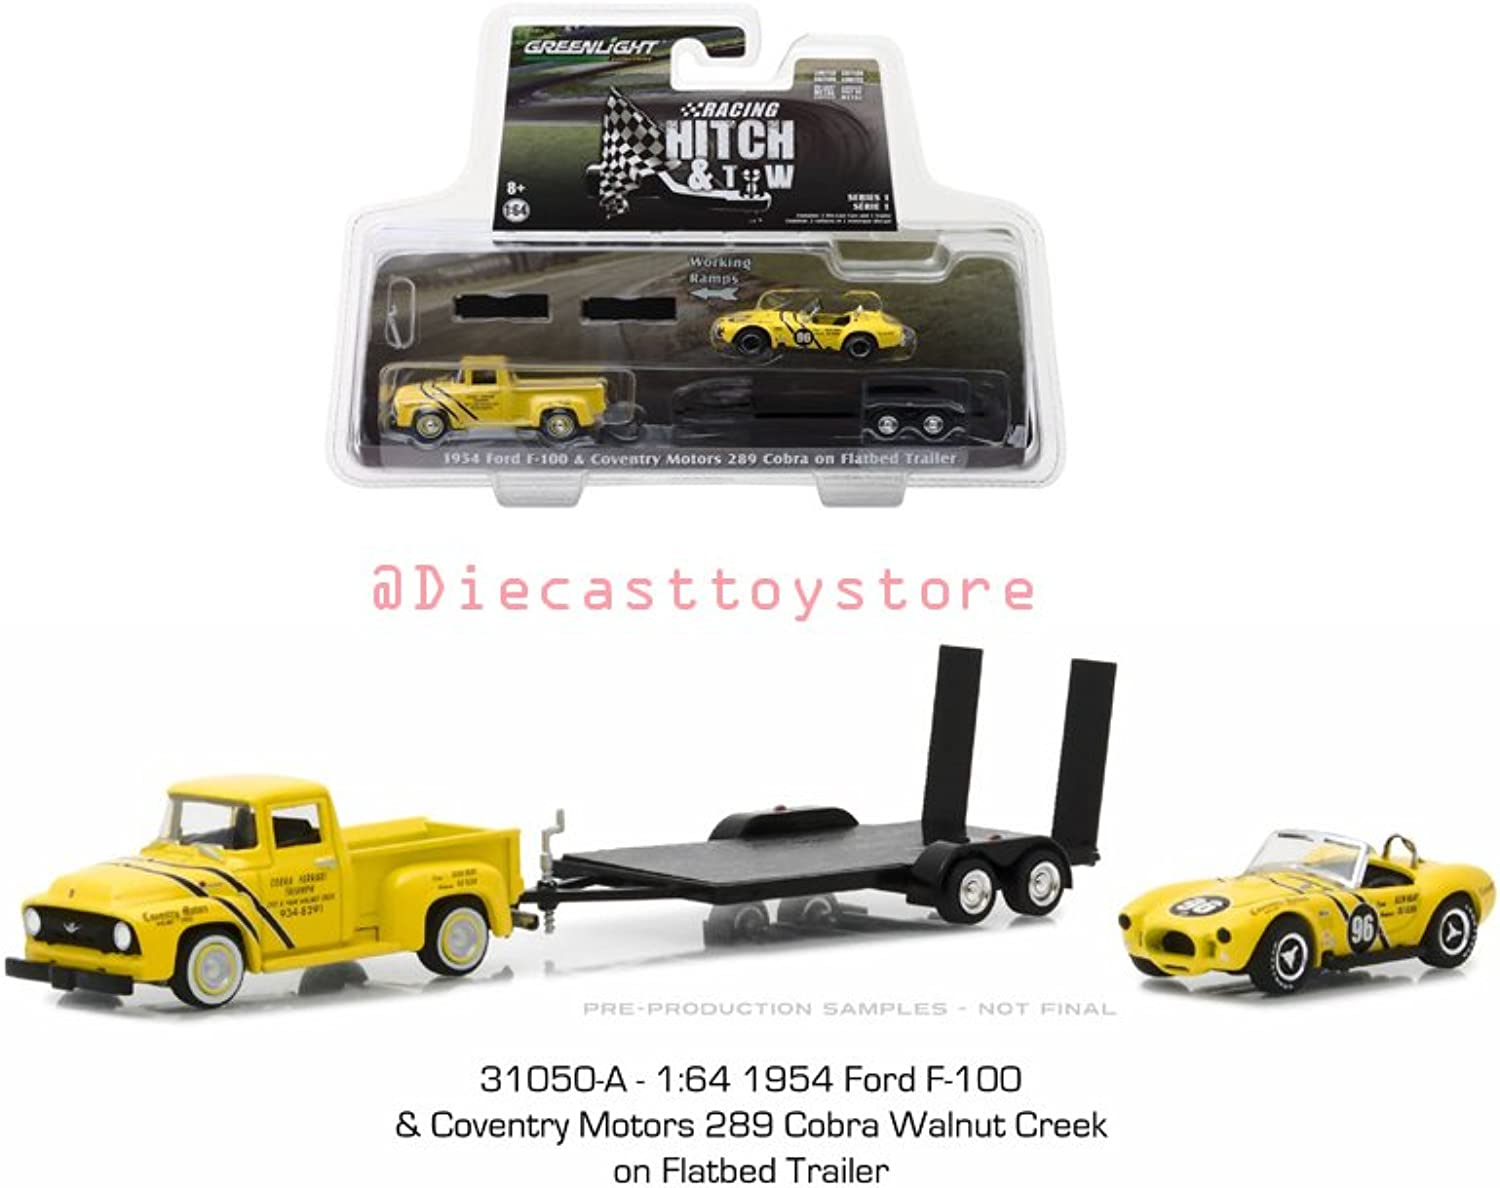 Greenlight New DIECAST Toys CAR 1 64 Racing Hitch & Tow Series 1  1954 Ford F100 & Coventry Motors 289 Cobra ON Flatbed Trailer 31050A